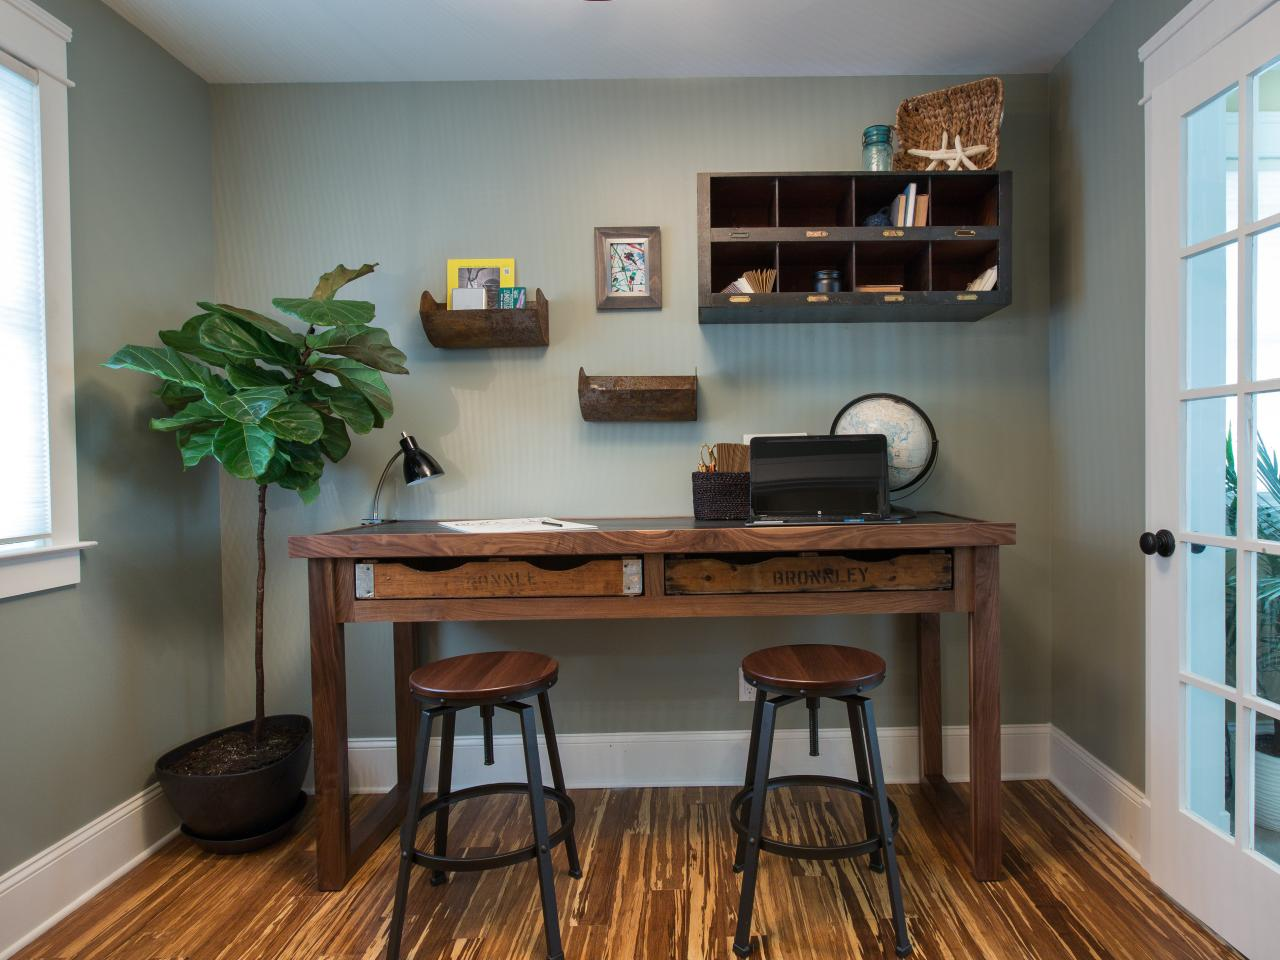 Office Desk Ideas How To Build a Rustic Office Desk